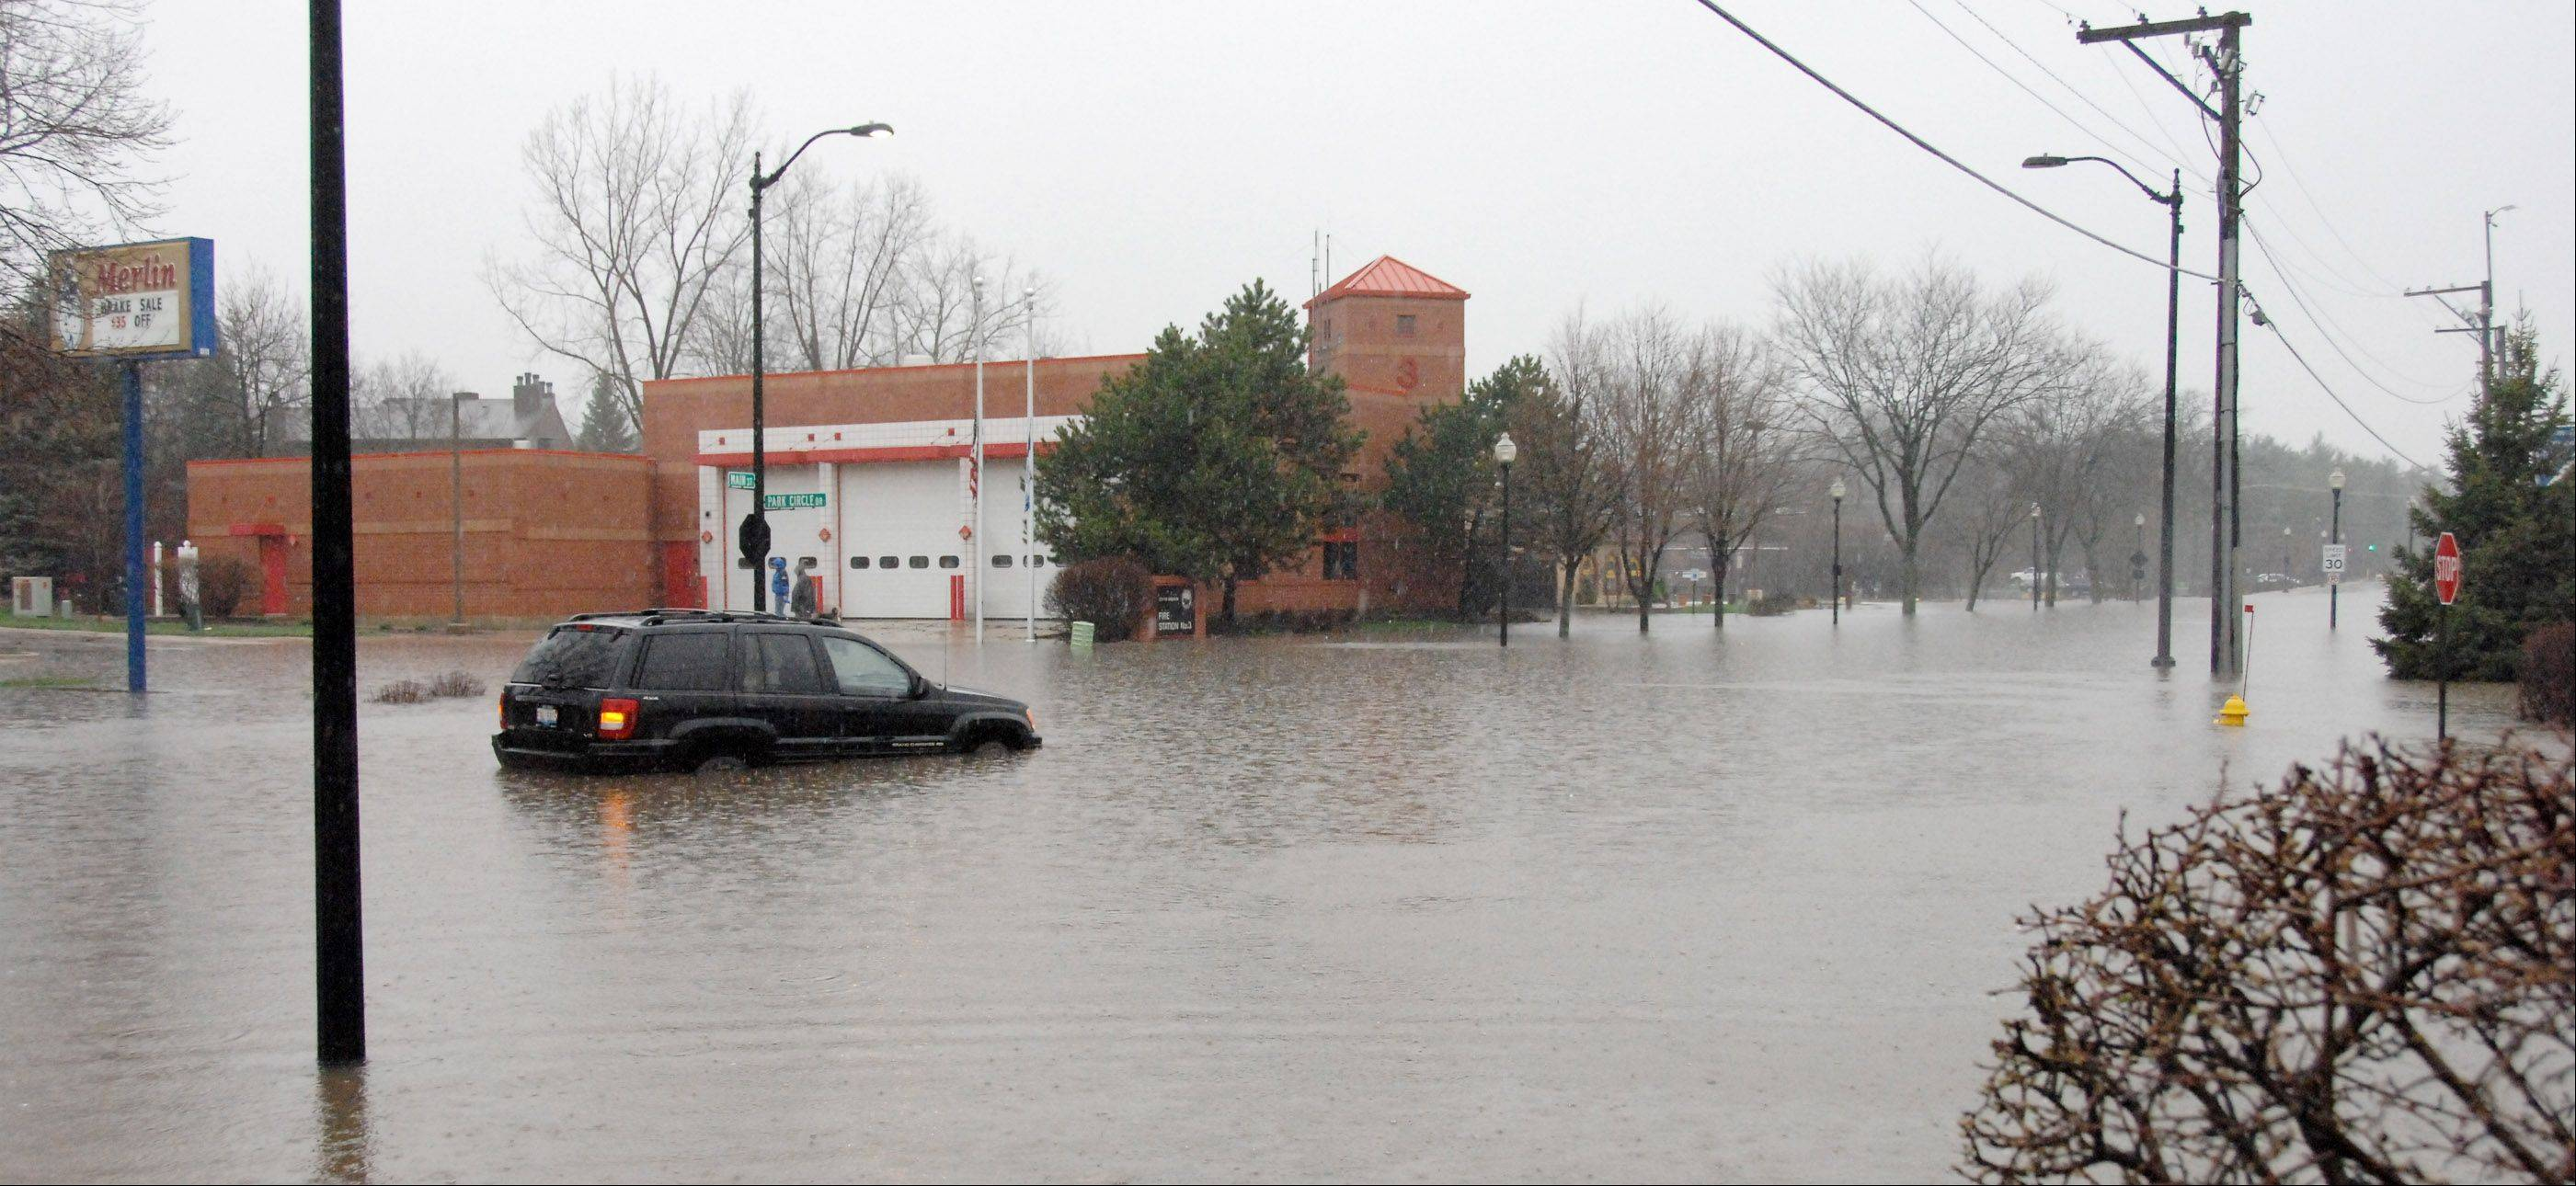 DuPage County must comes up with a plan on how to spend $7 million in federal relief aid for the April floods. North Main Street in Wheaton, shown here, was one of the casualties.